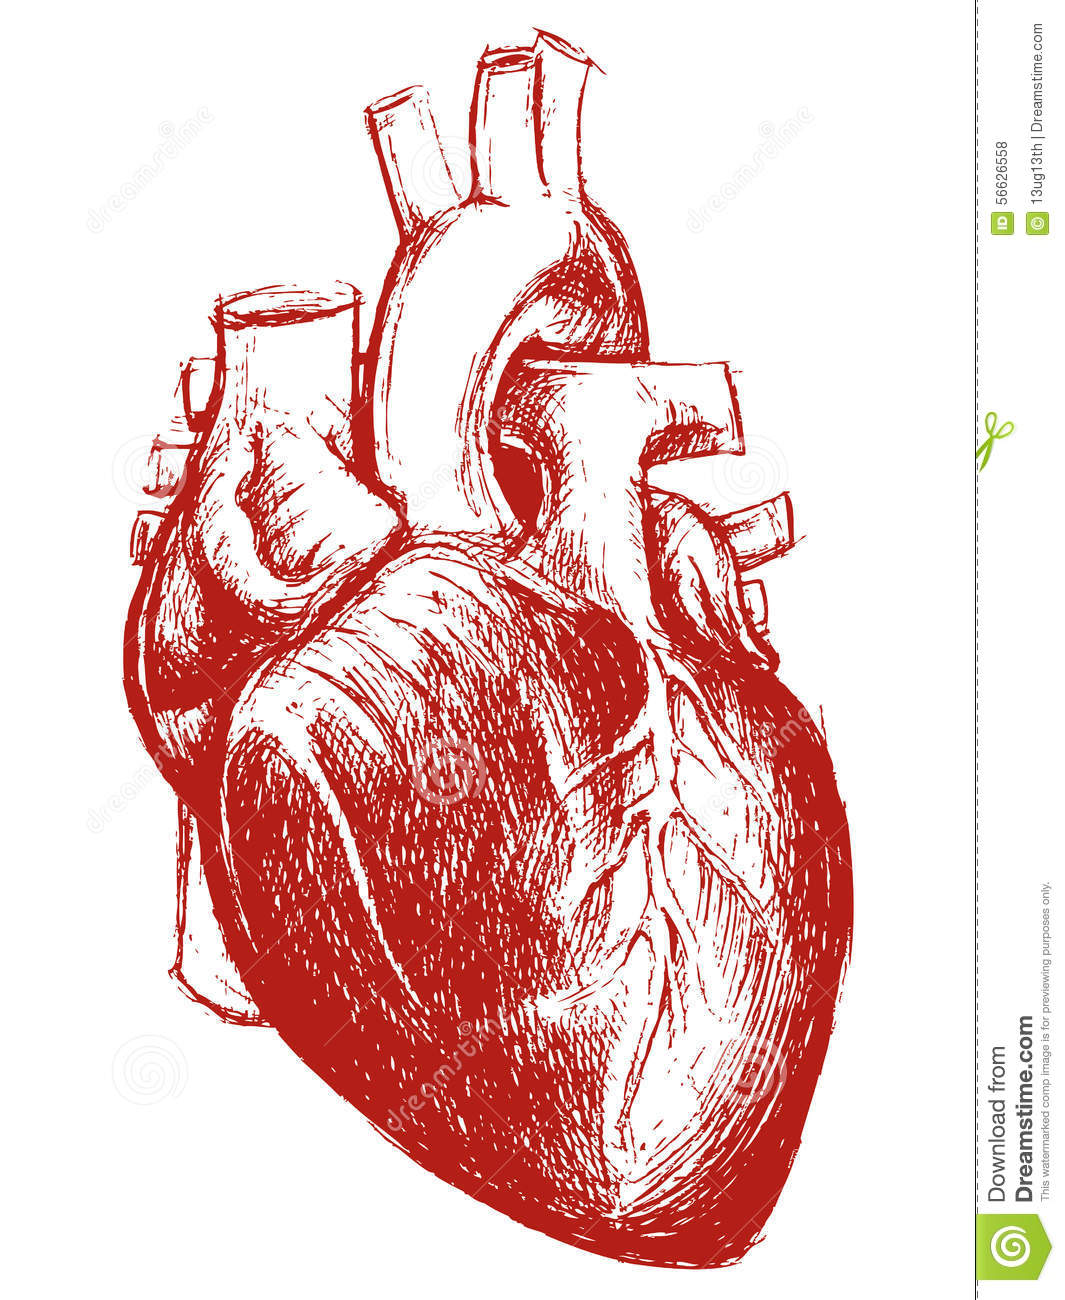 Drawing Lines Using Svg : Human heart drawing line work stock vector illustration